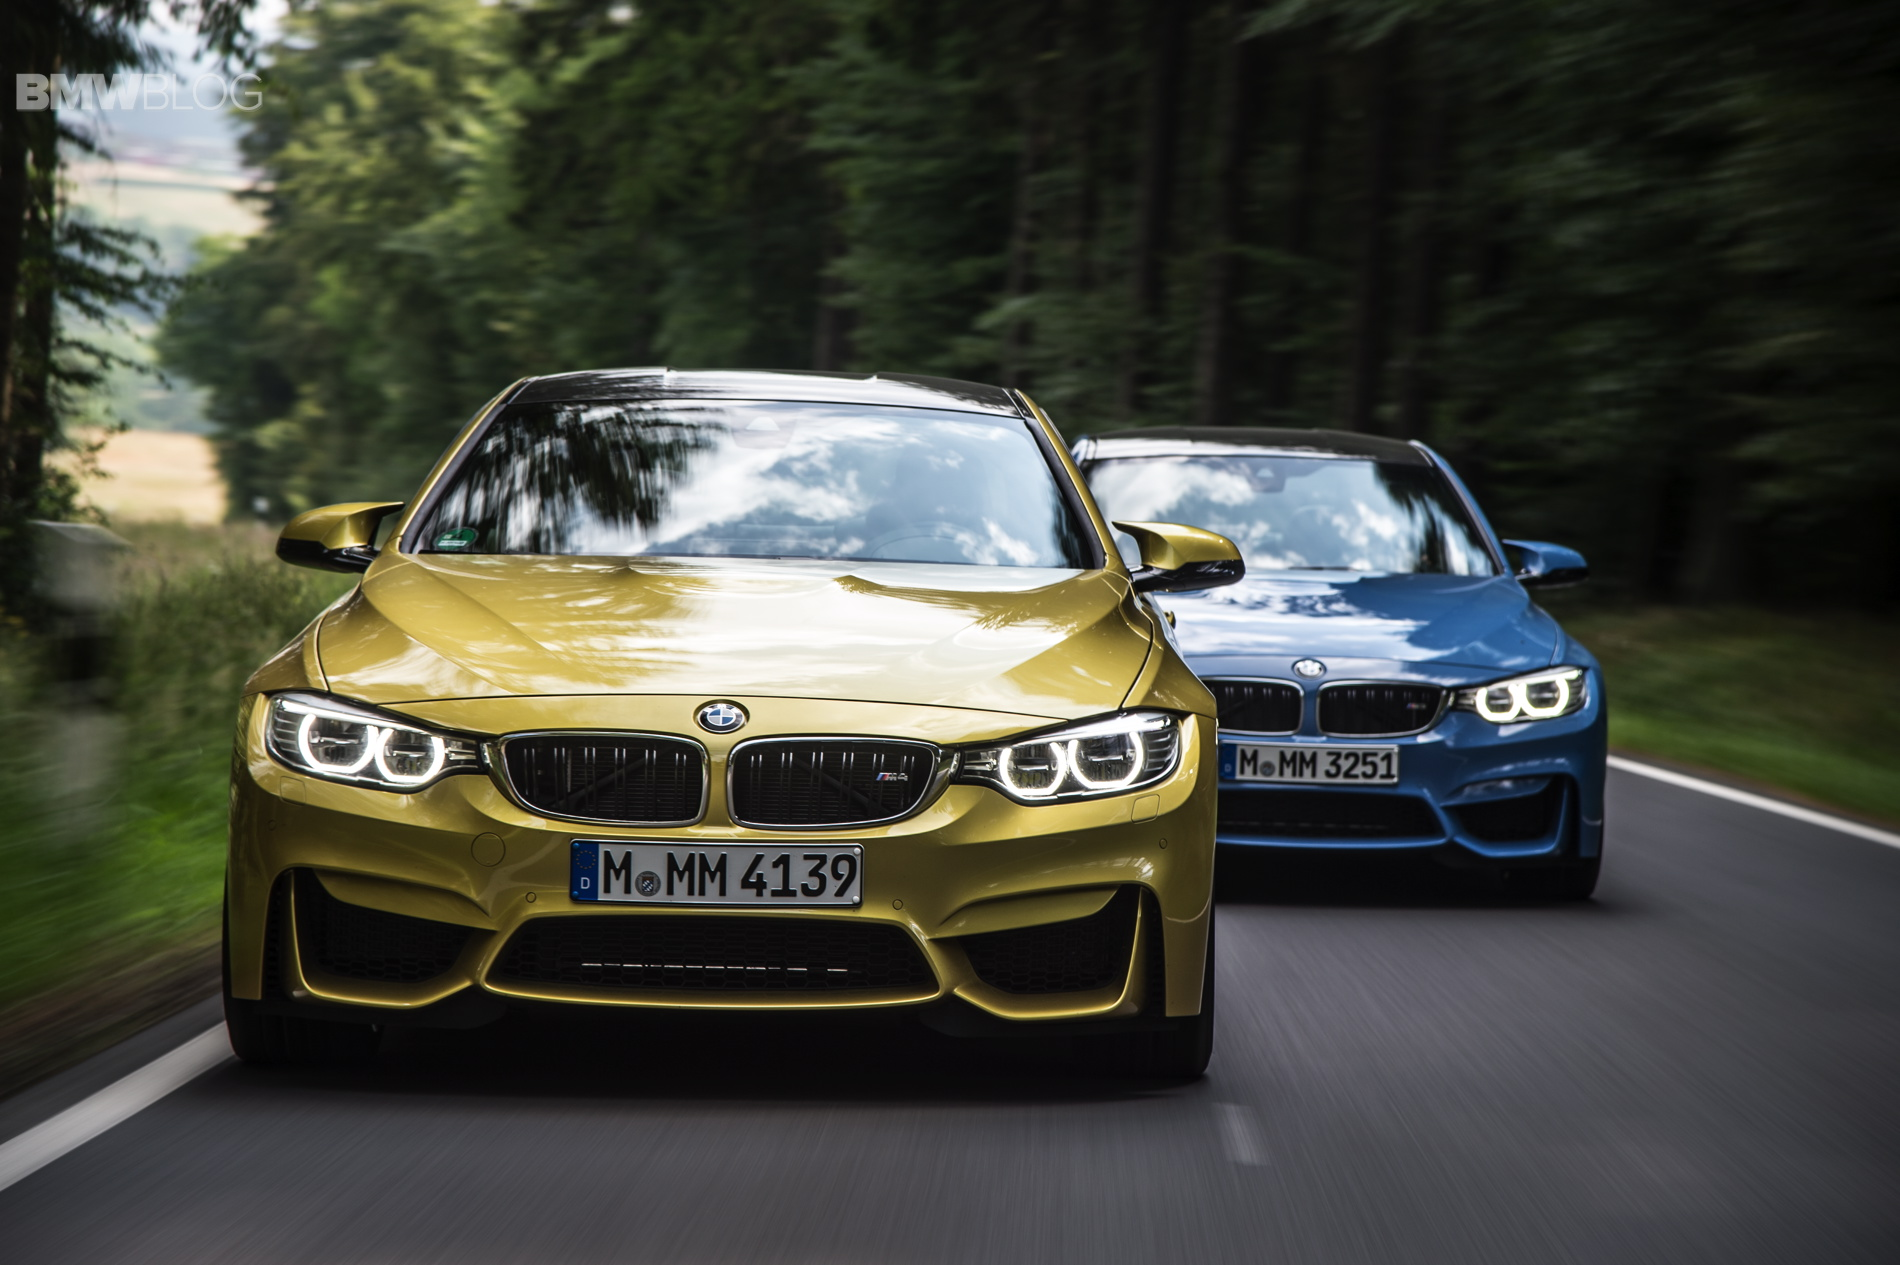 Bmw Blog Your Daily Bmw News Photos Videos And Test Drives